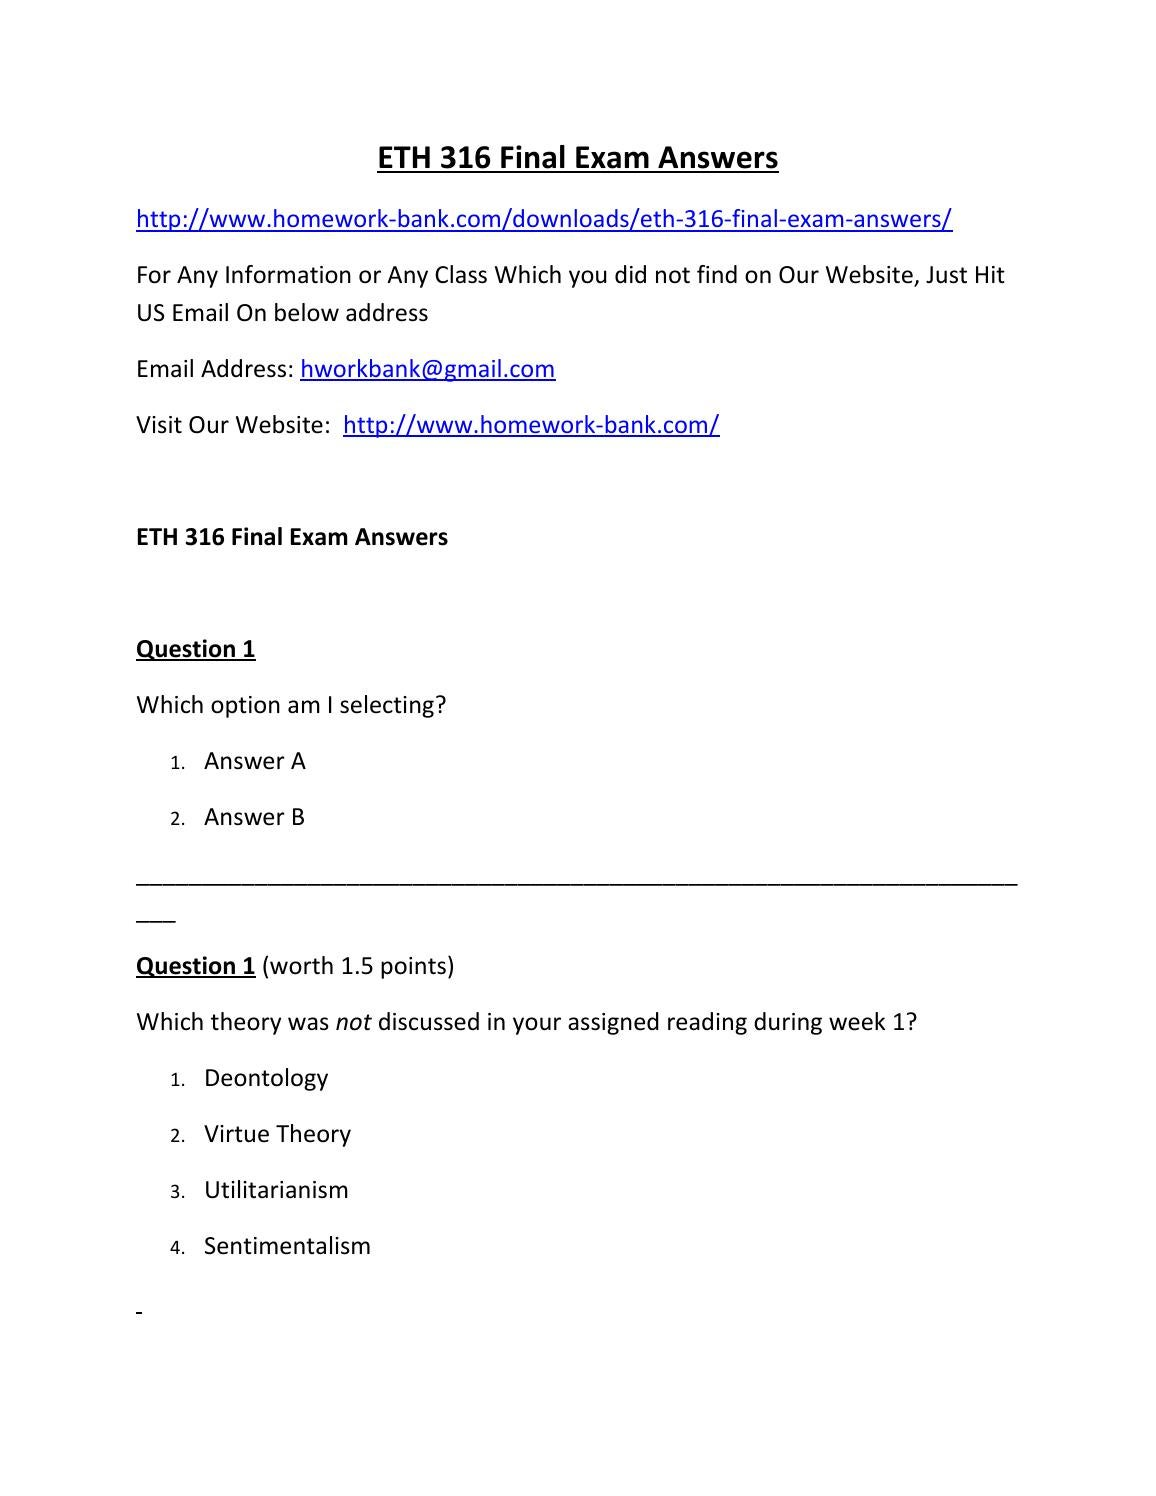 eth 316 week 5 final exam Eth/316 week 1  week 2  week 3  week 4  week 5  fin/366 week 1  mgt 330, final exam assessment questions answers study guide material.